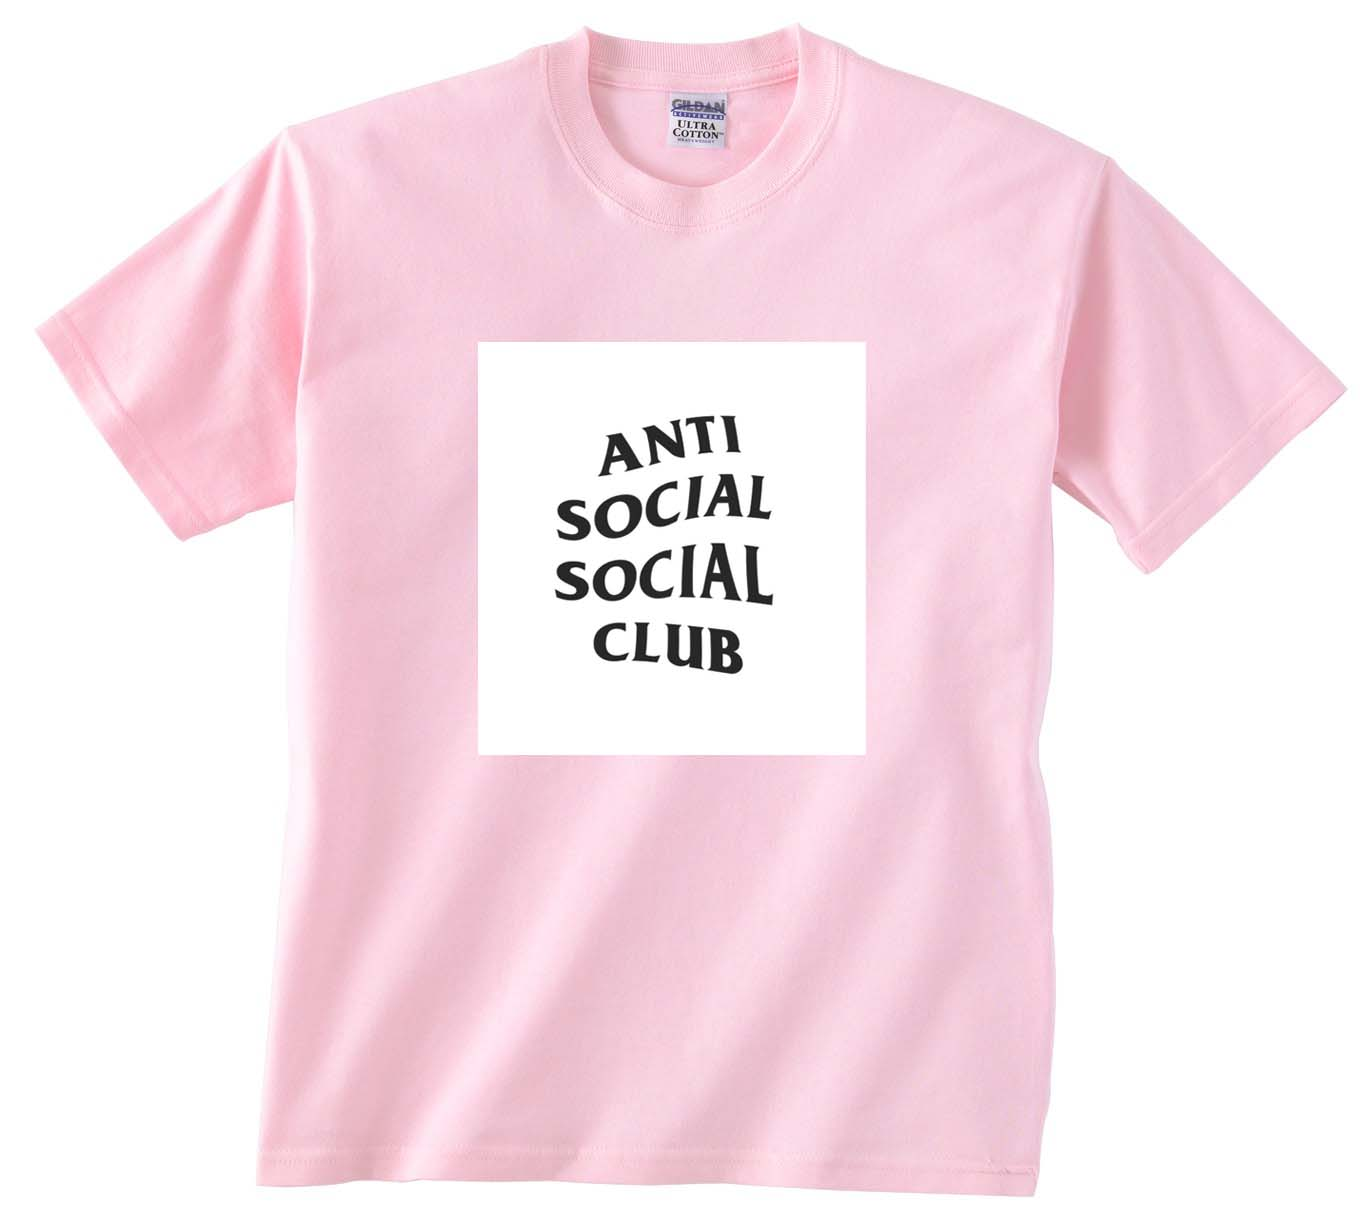 41752b8eb7f7 anti social social club light pink T Shirt Size S